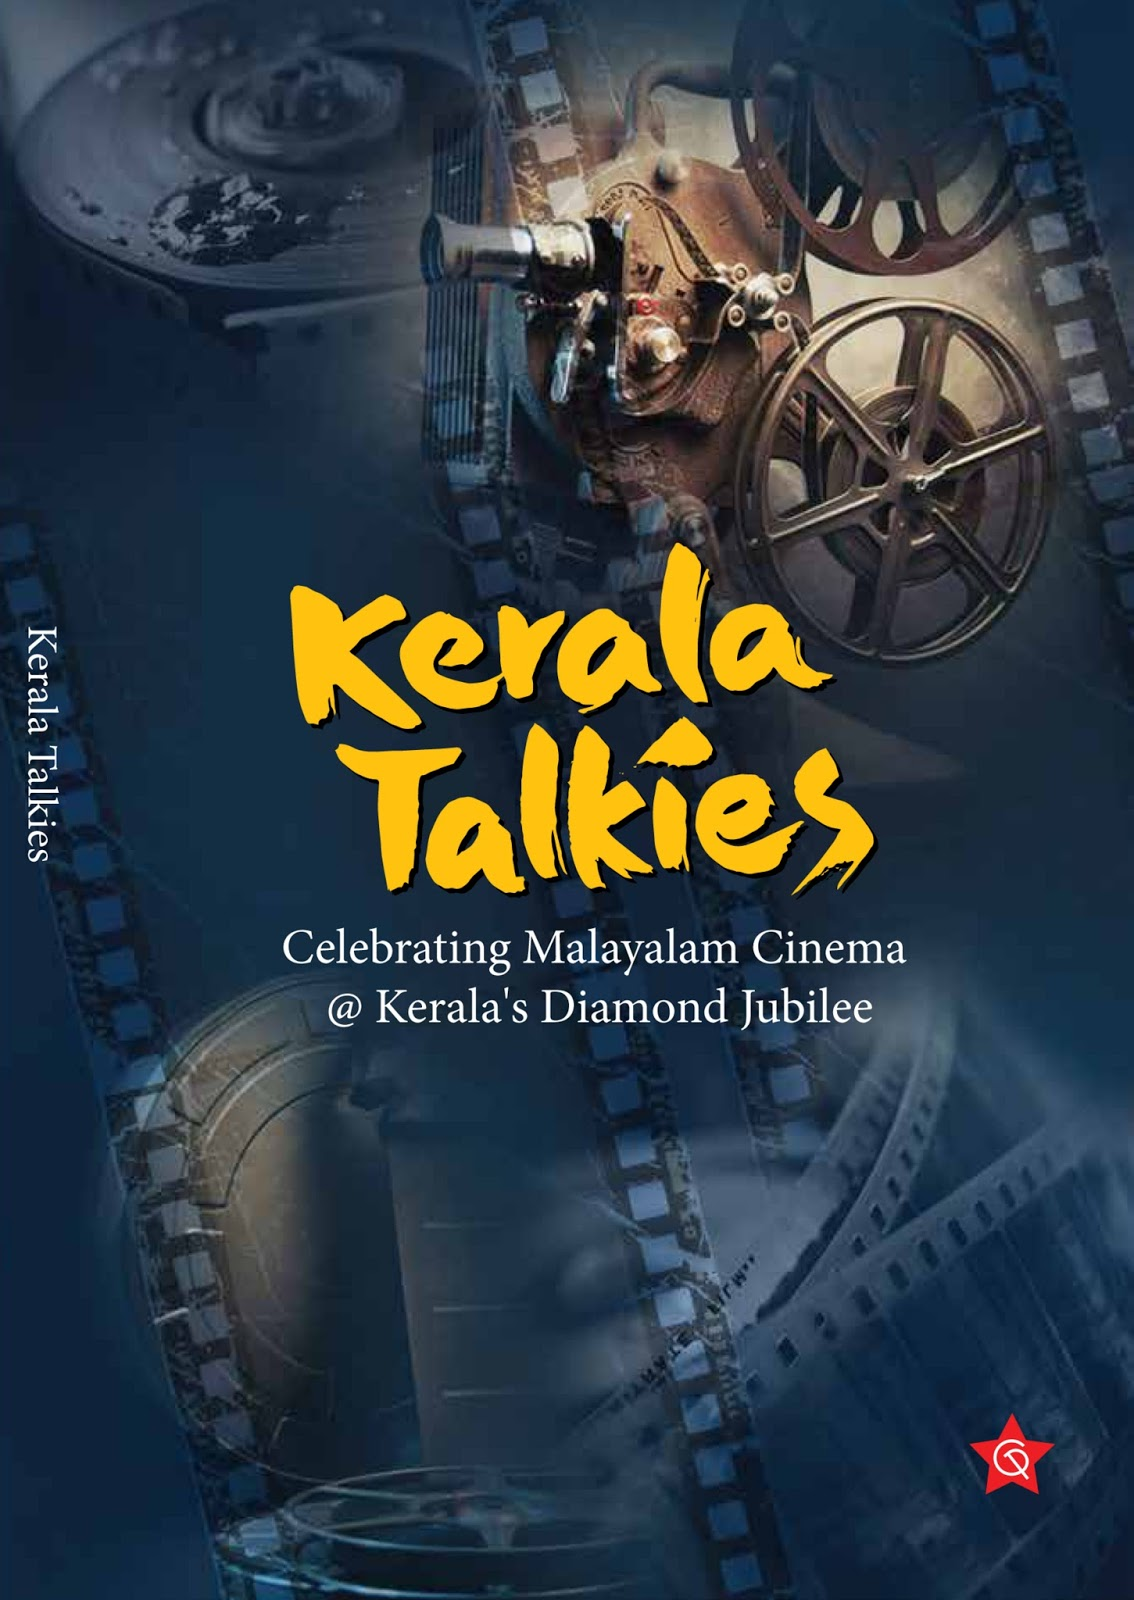 Kerala Talkies